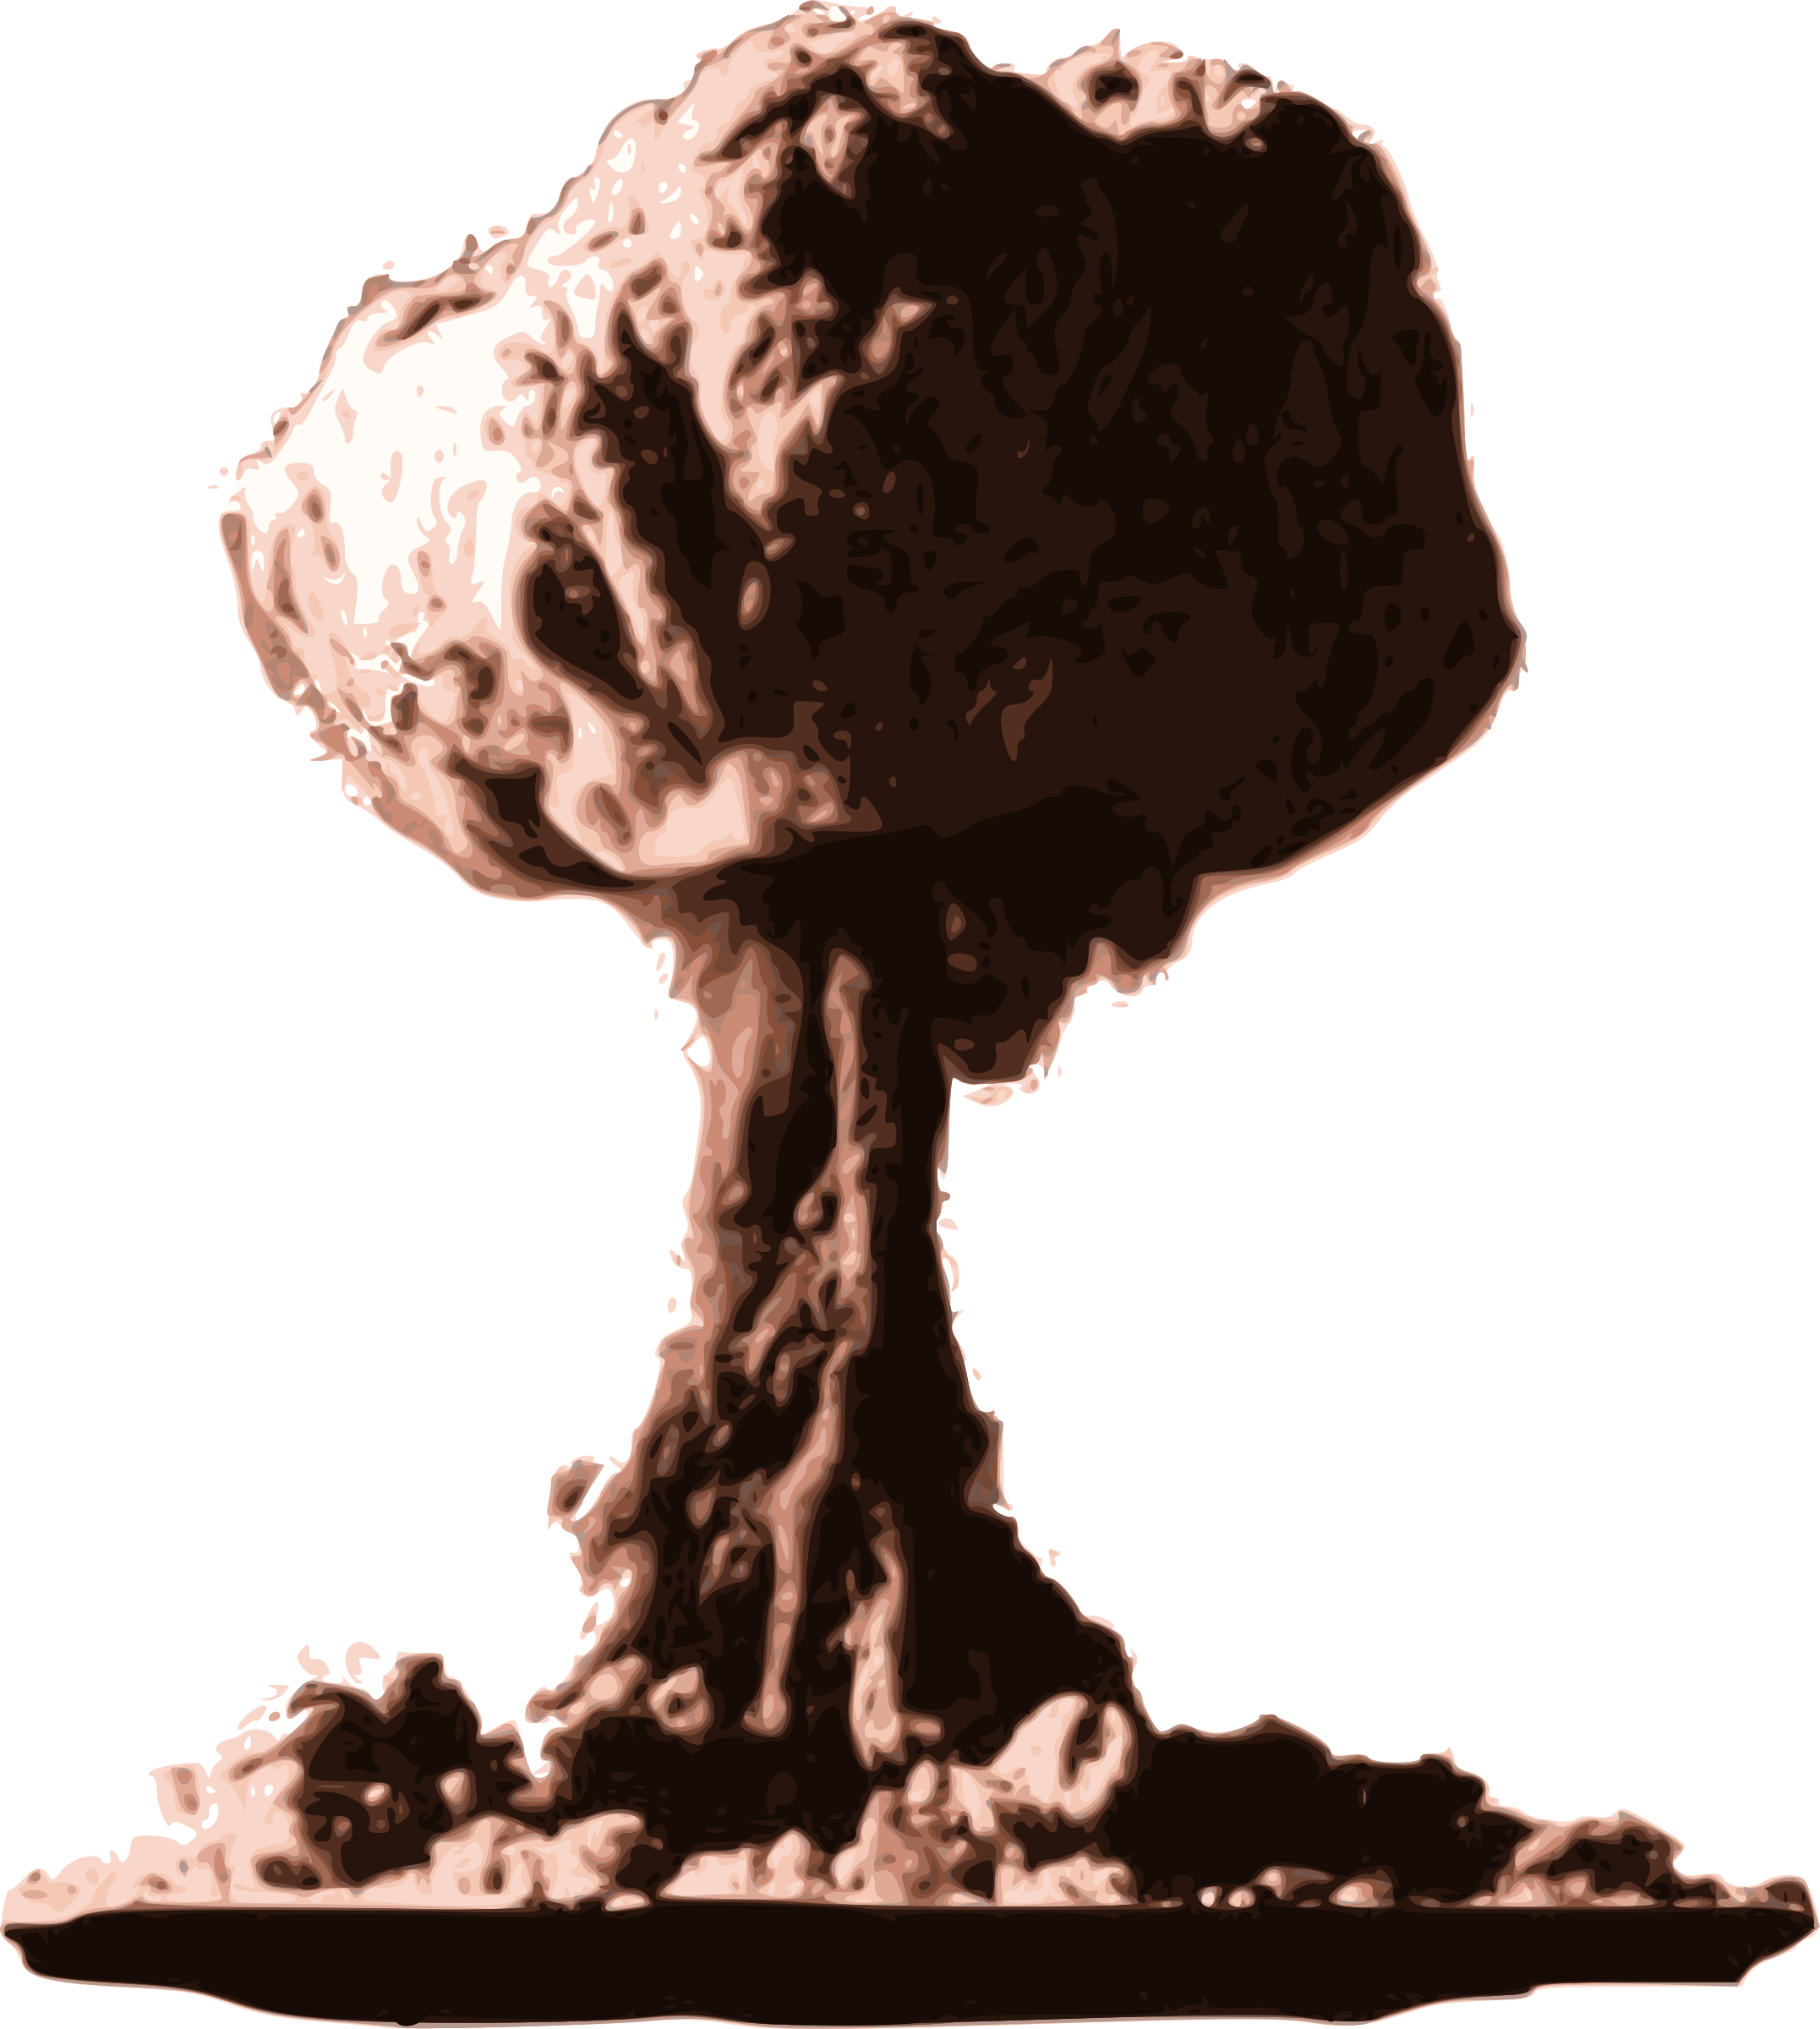 Explosions clipart war Transparent with image explosion explosion